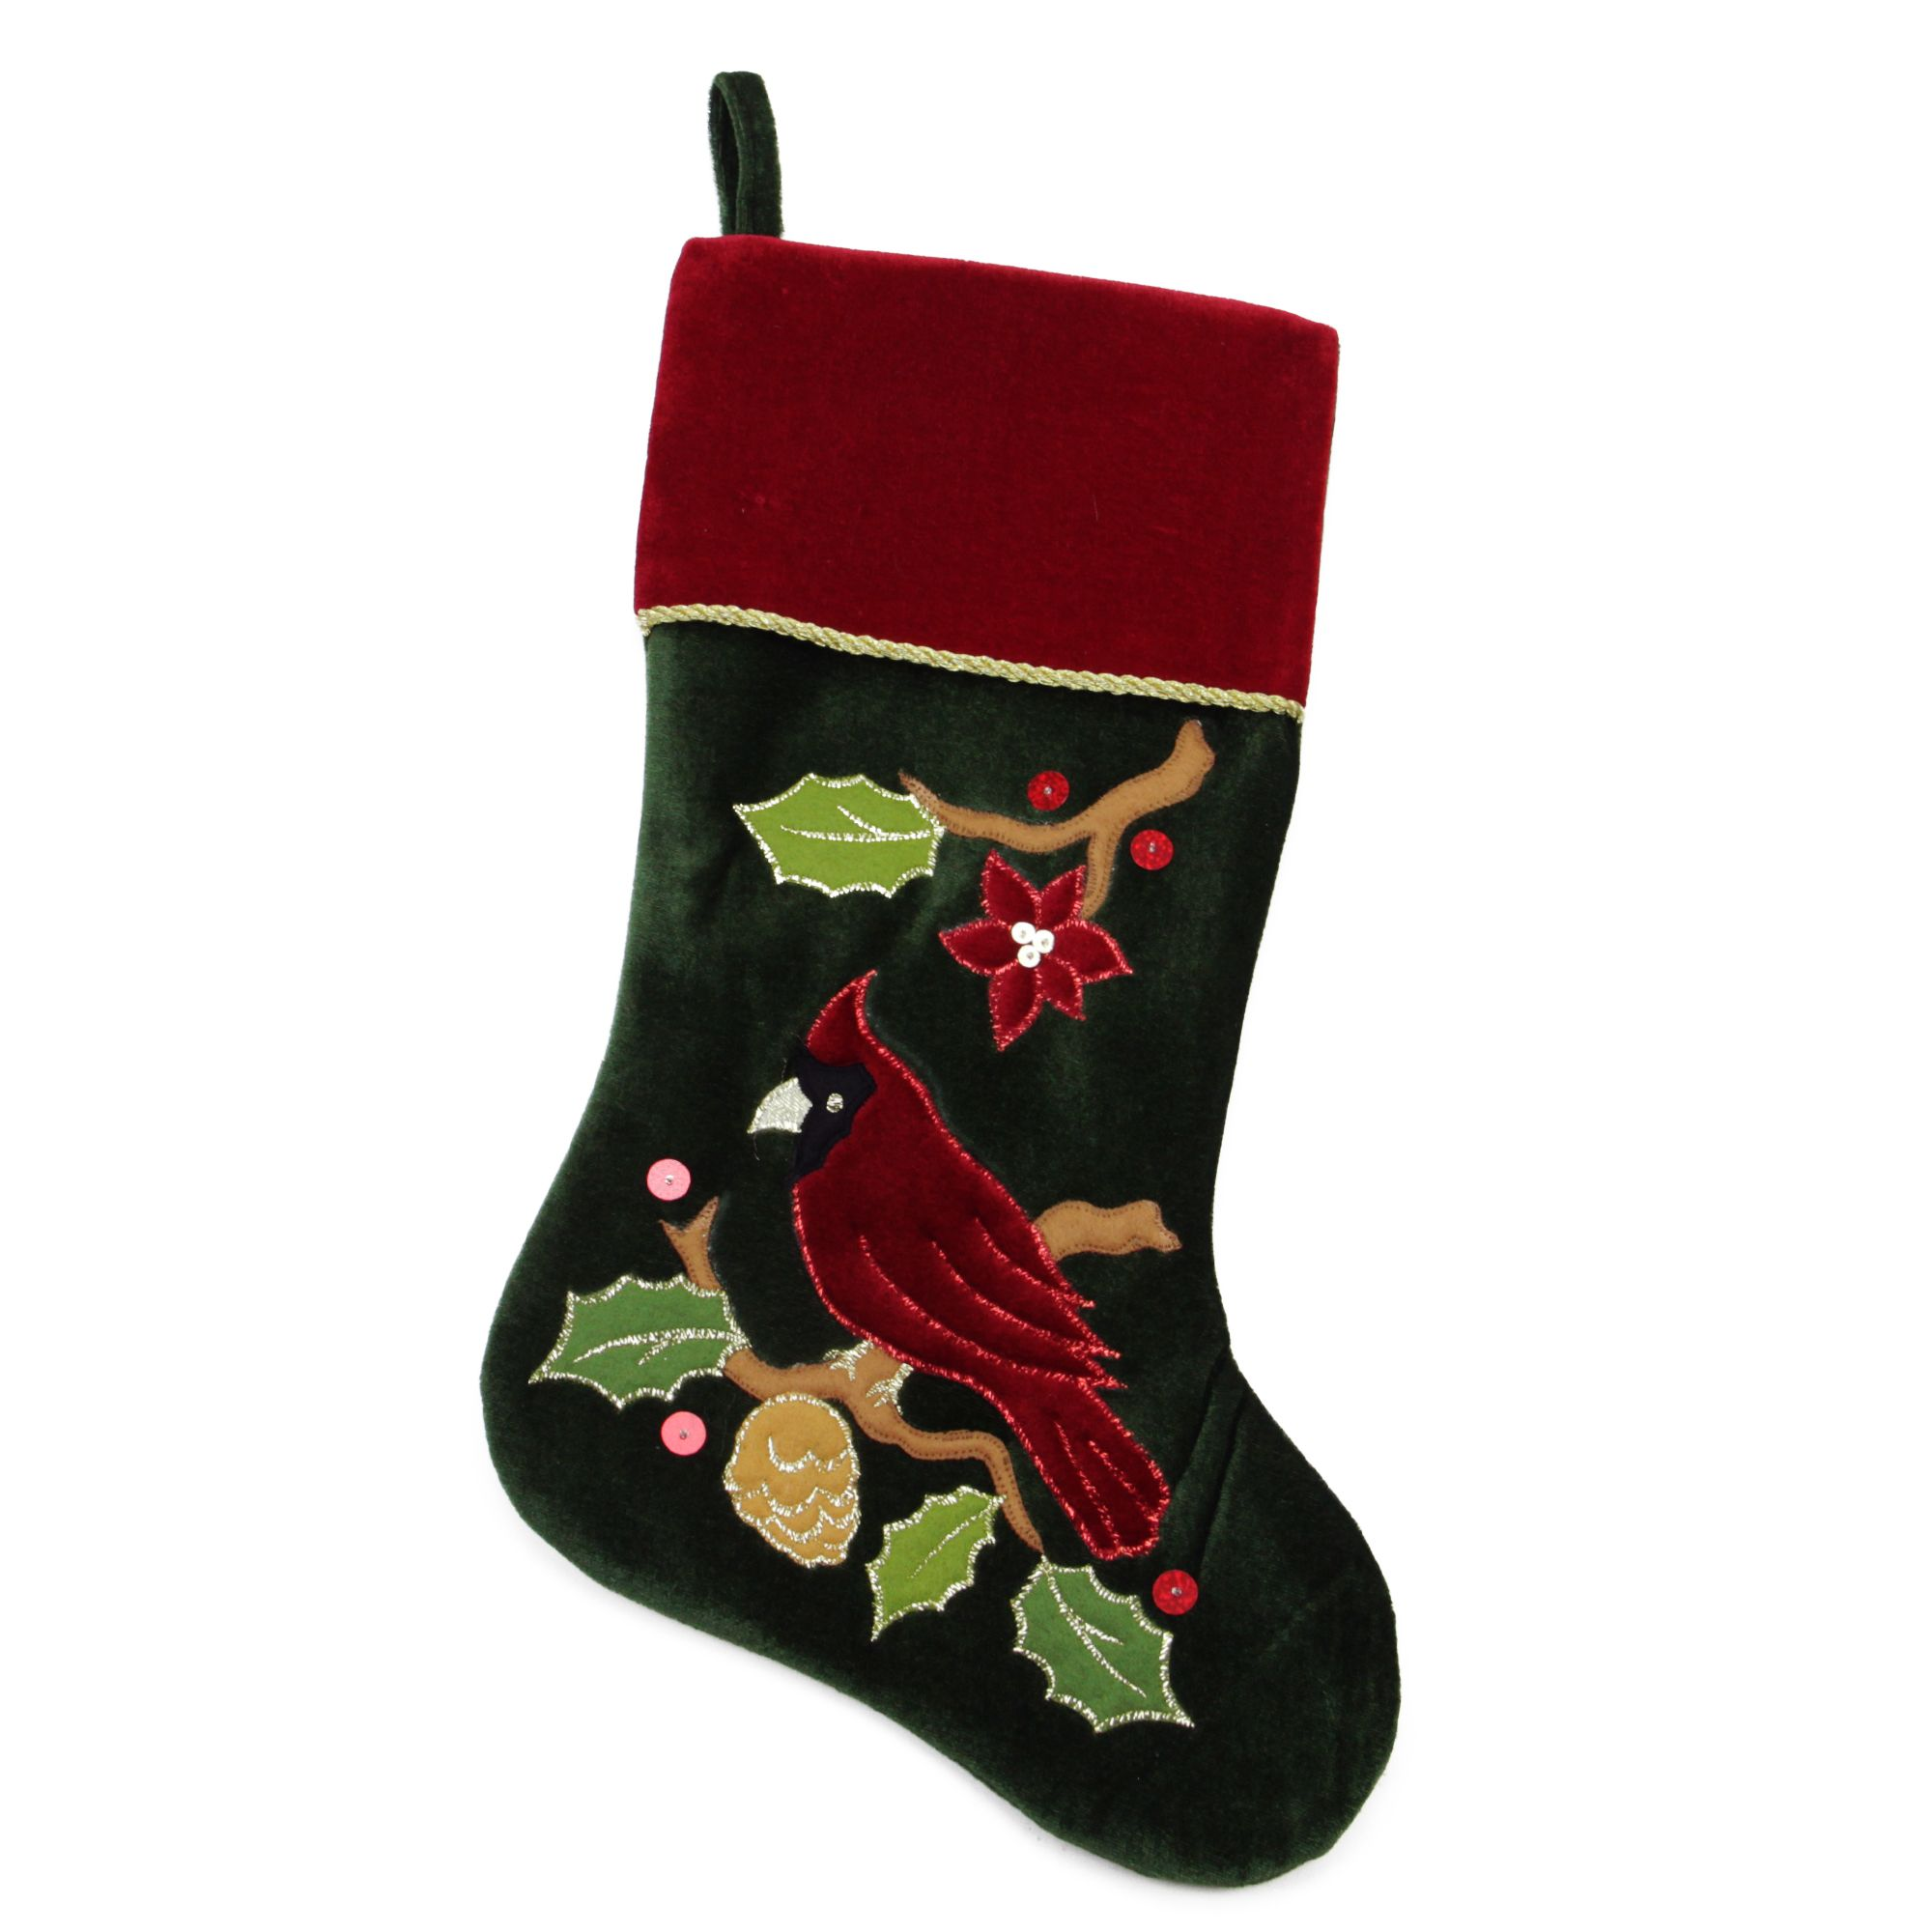 20 5 Red And Green Cardinal Embroidered Christmas Stocking Christmas Stockings Embroidered Christmas Stockings Diy Stockings